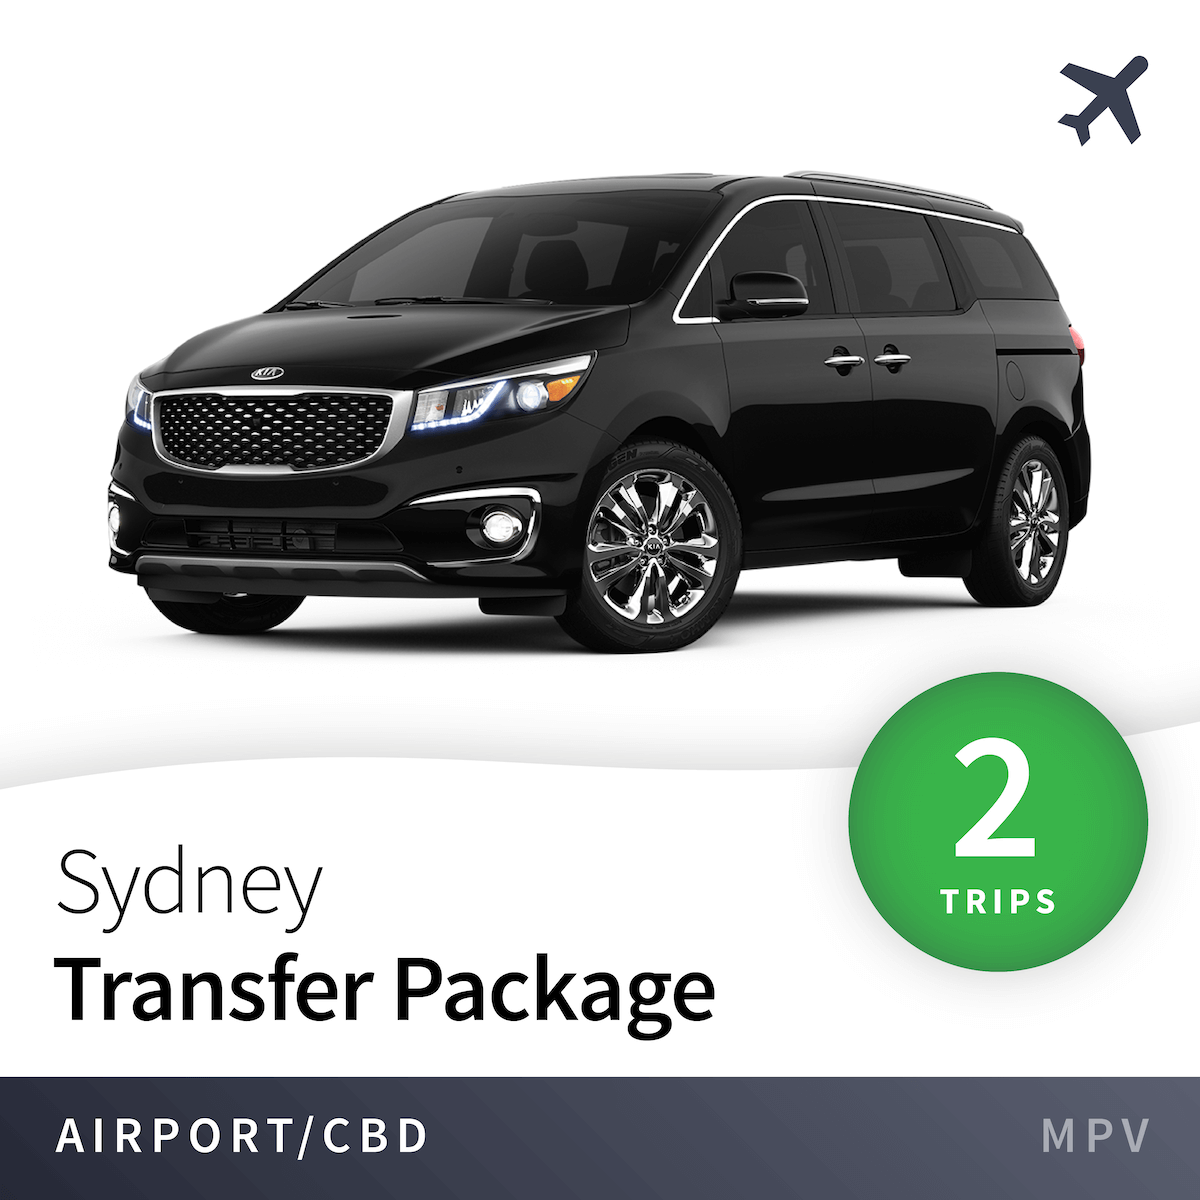 Sydney Airport Transfer Package - MPV (2 Trips) 4